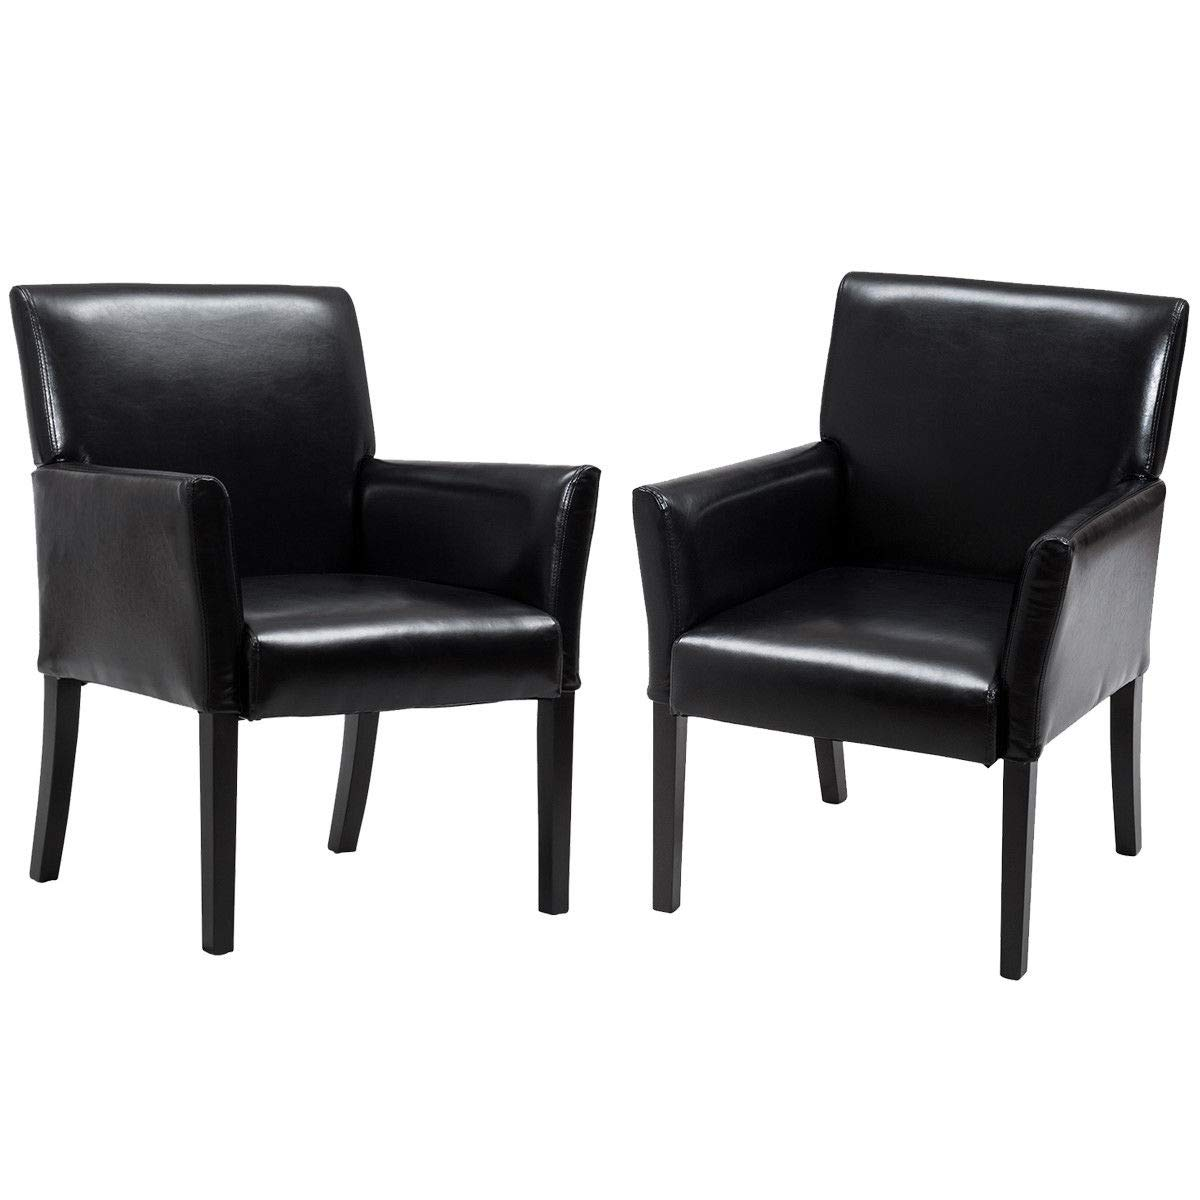 Giantex Leather Reception Guest Chairs Set Office Executive Side Chair Padded Seat Ergonomic Mid-Back Meeting Waiting Room Conference Office Guest Chairs w/Arms, Black (2 PCS)